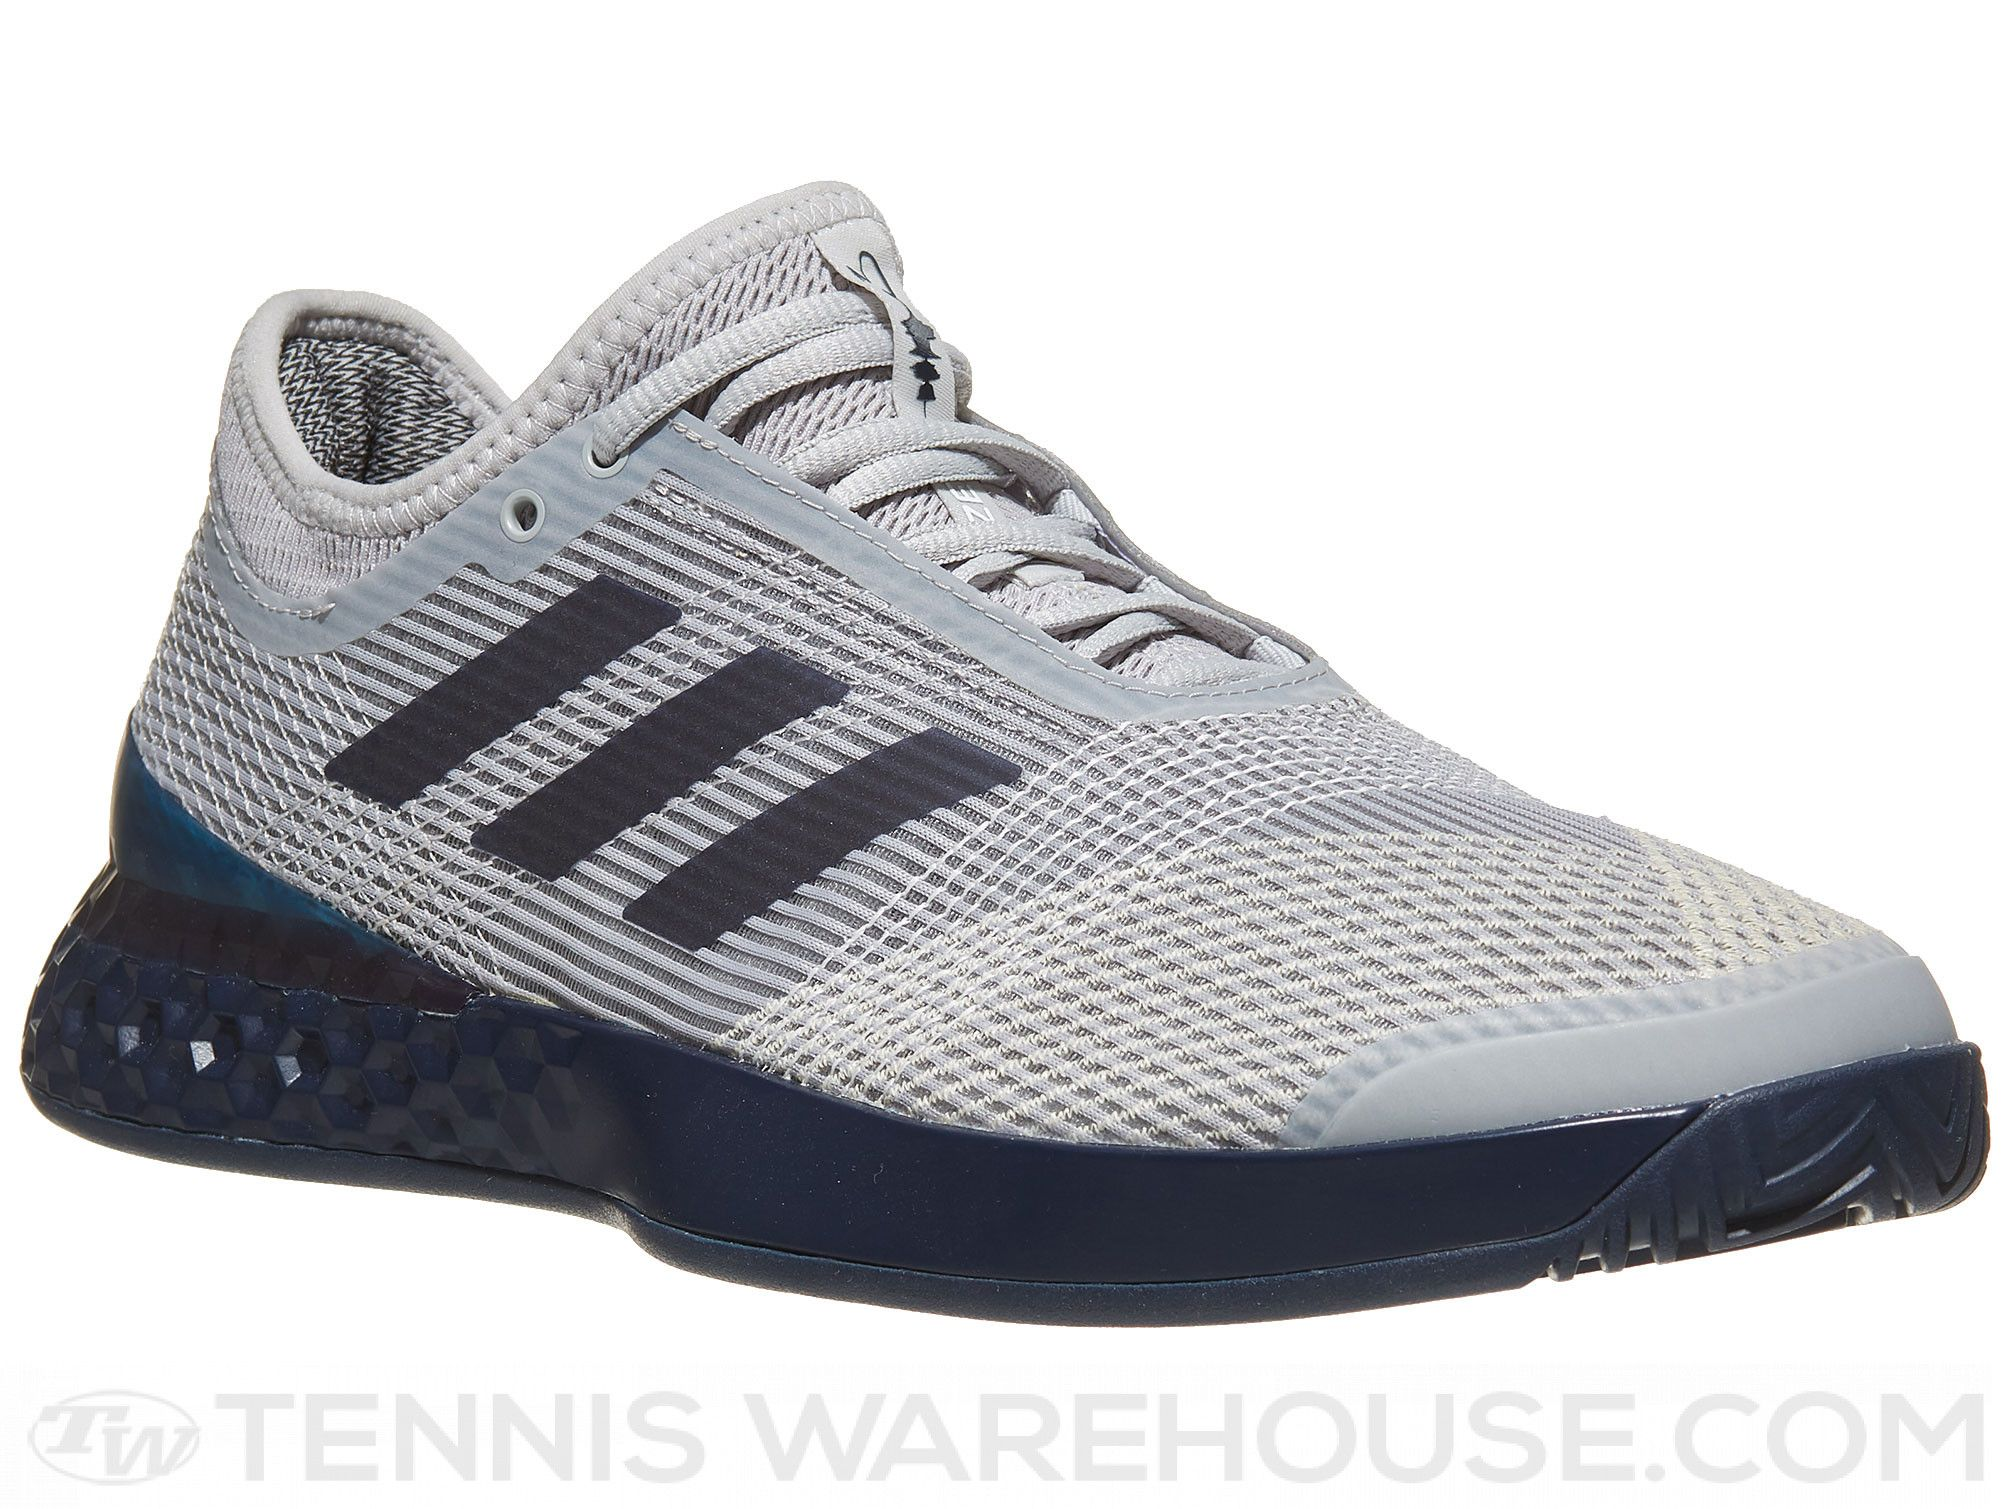 de4b02a3eb994 adidas adizero Ubersonic 3 Grey/Navy Men's Shoe in 2019 | Tennis ...